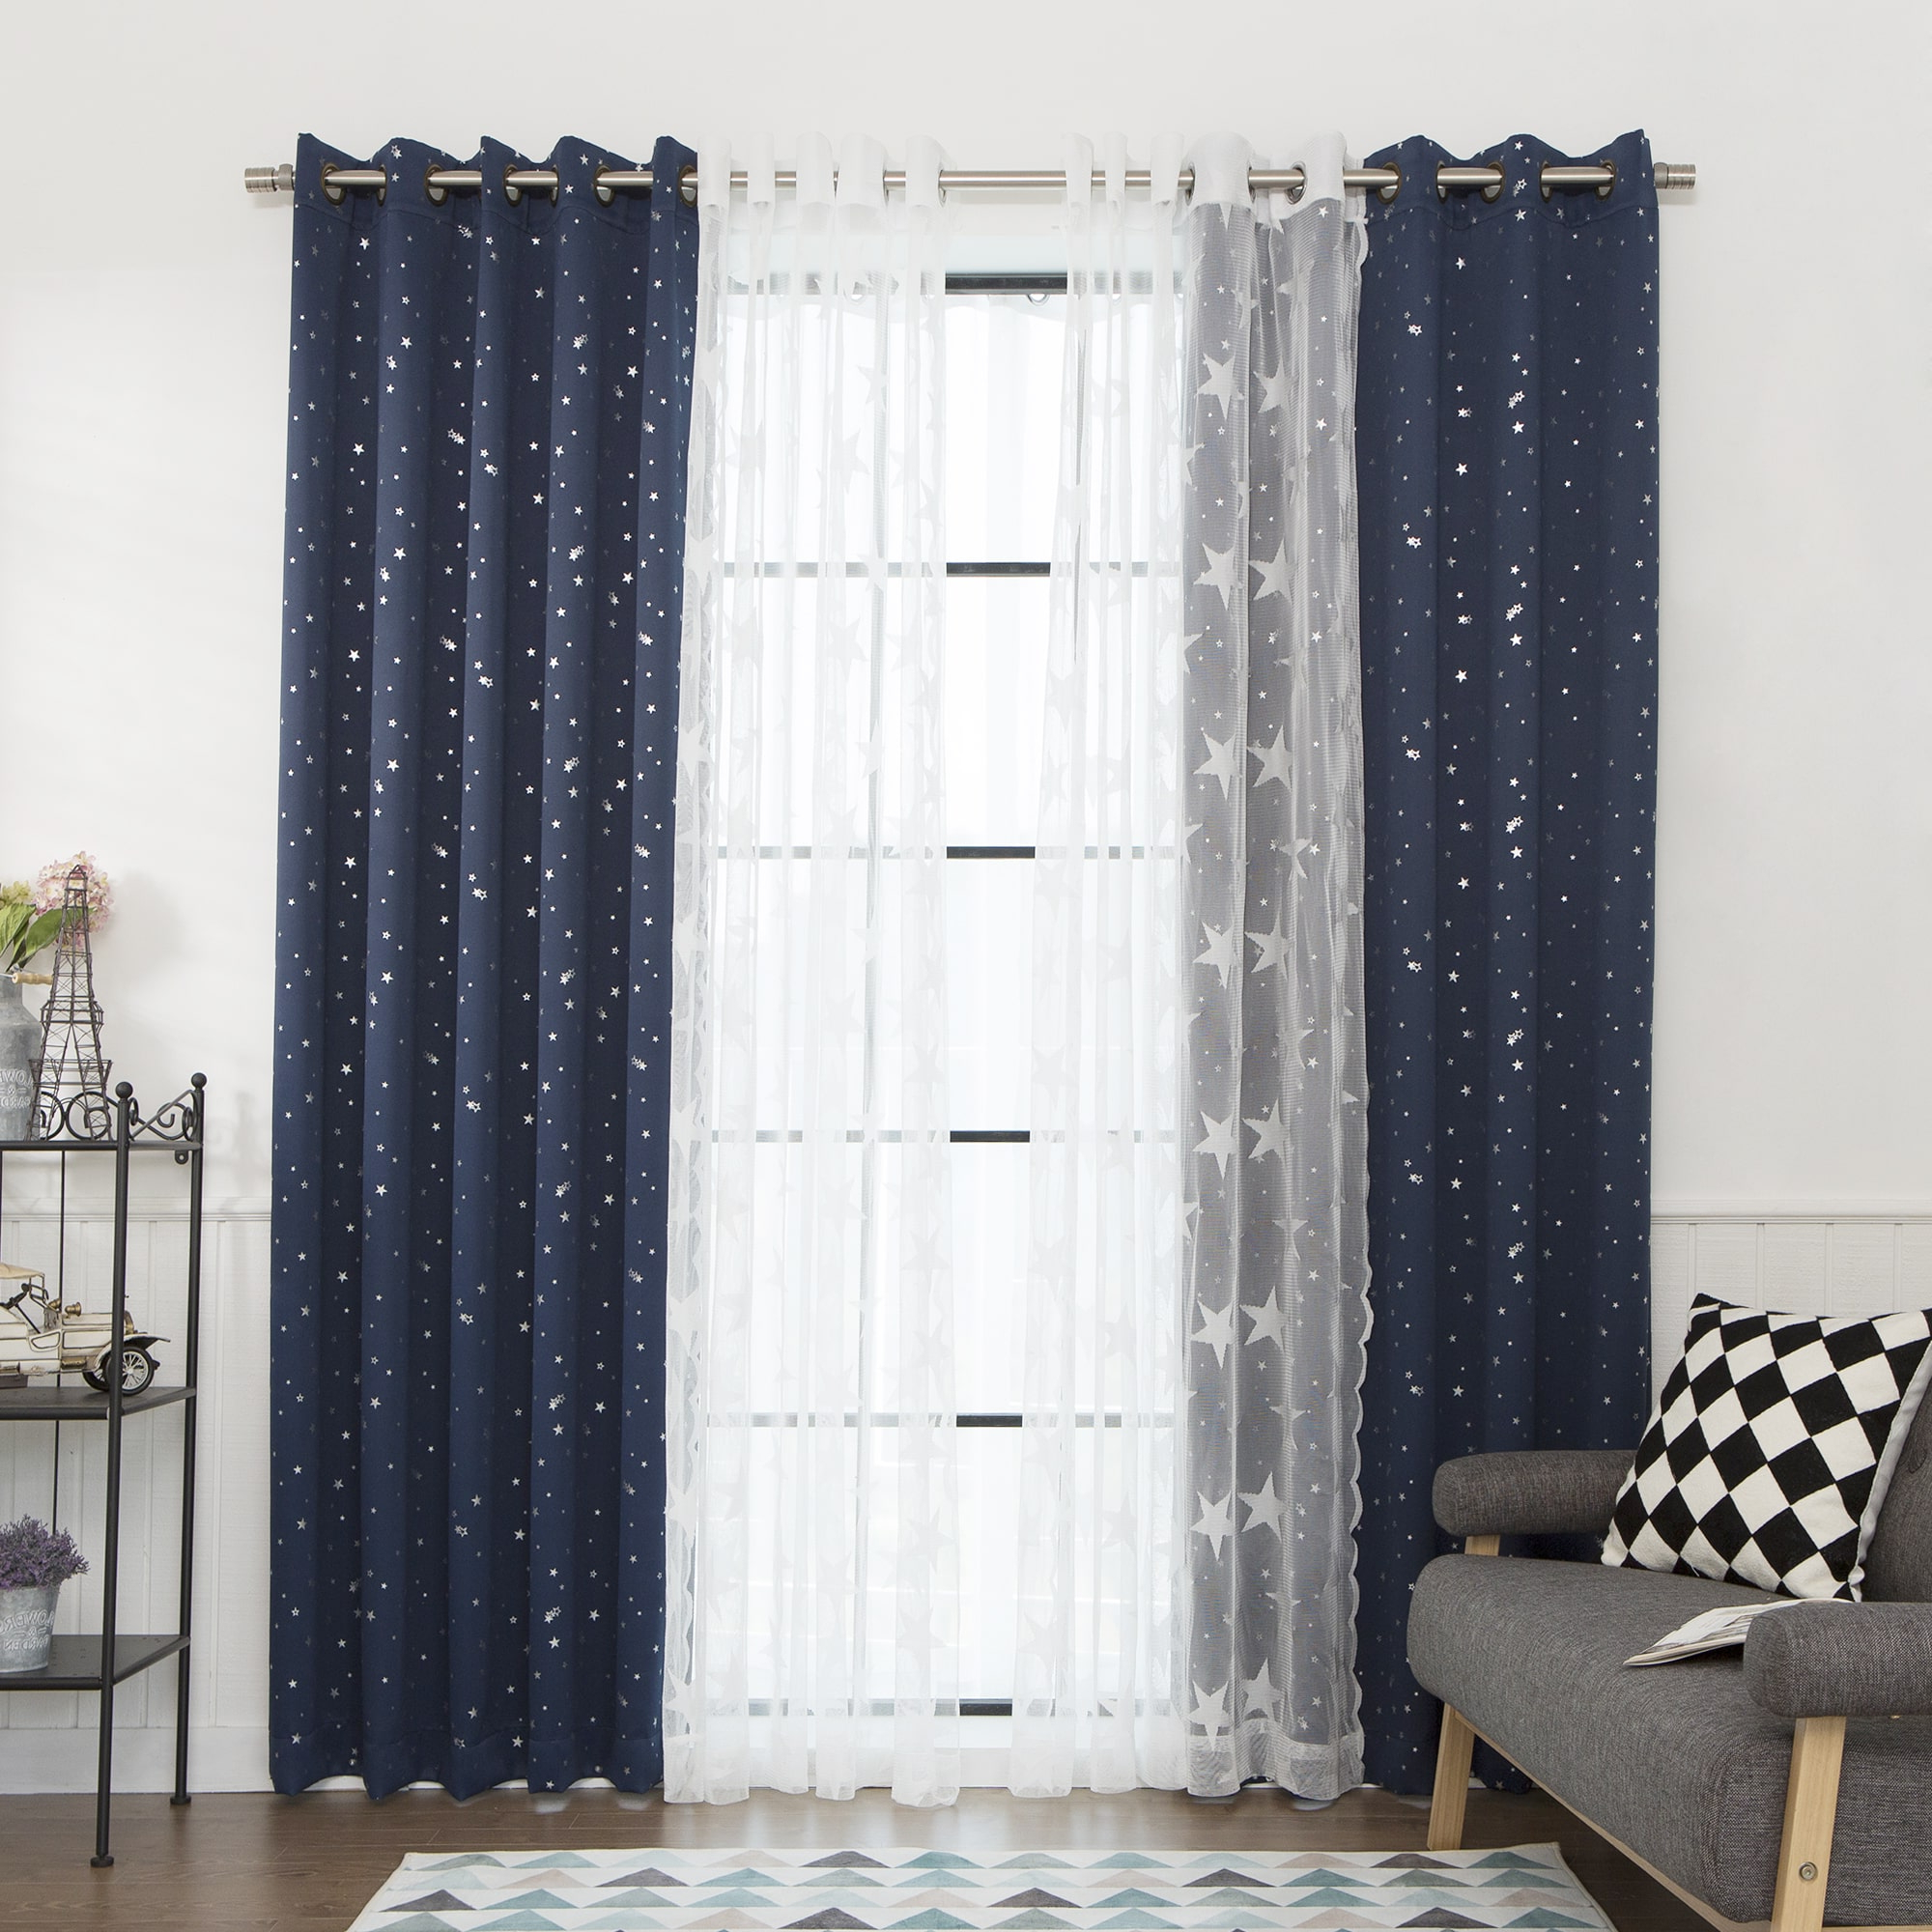 Preferred Mix & Match Blackout Tulle Lace Bronze Grommet Curtain Panel Sets With Aurora Home Mix & Match Curtains Blackout Tulle Lace Sheer (View 18 of 20)